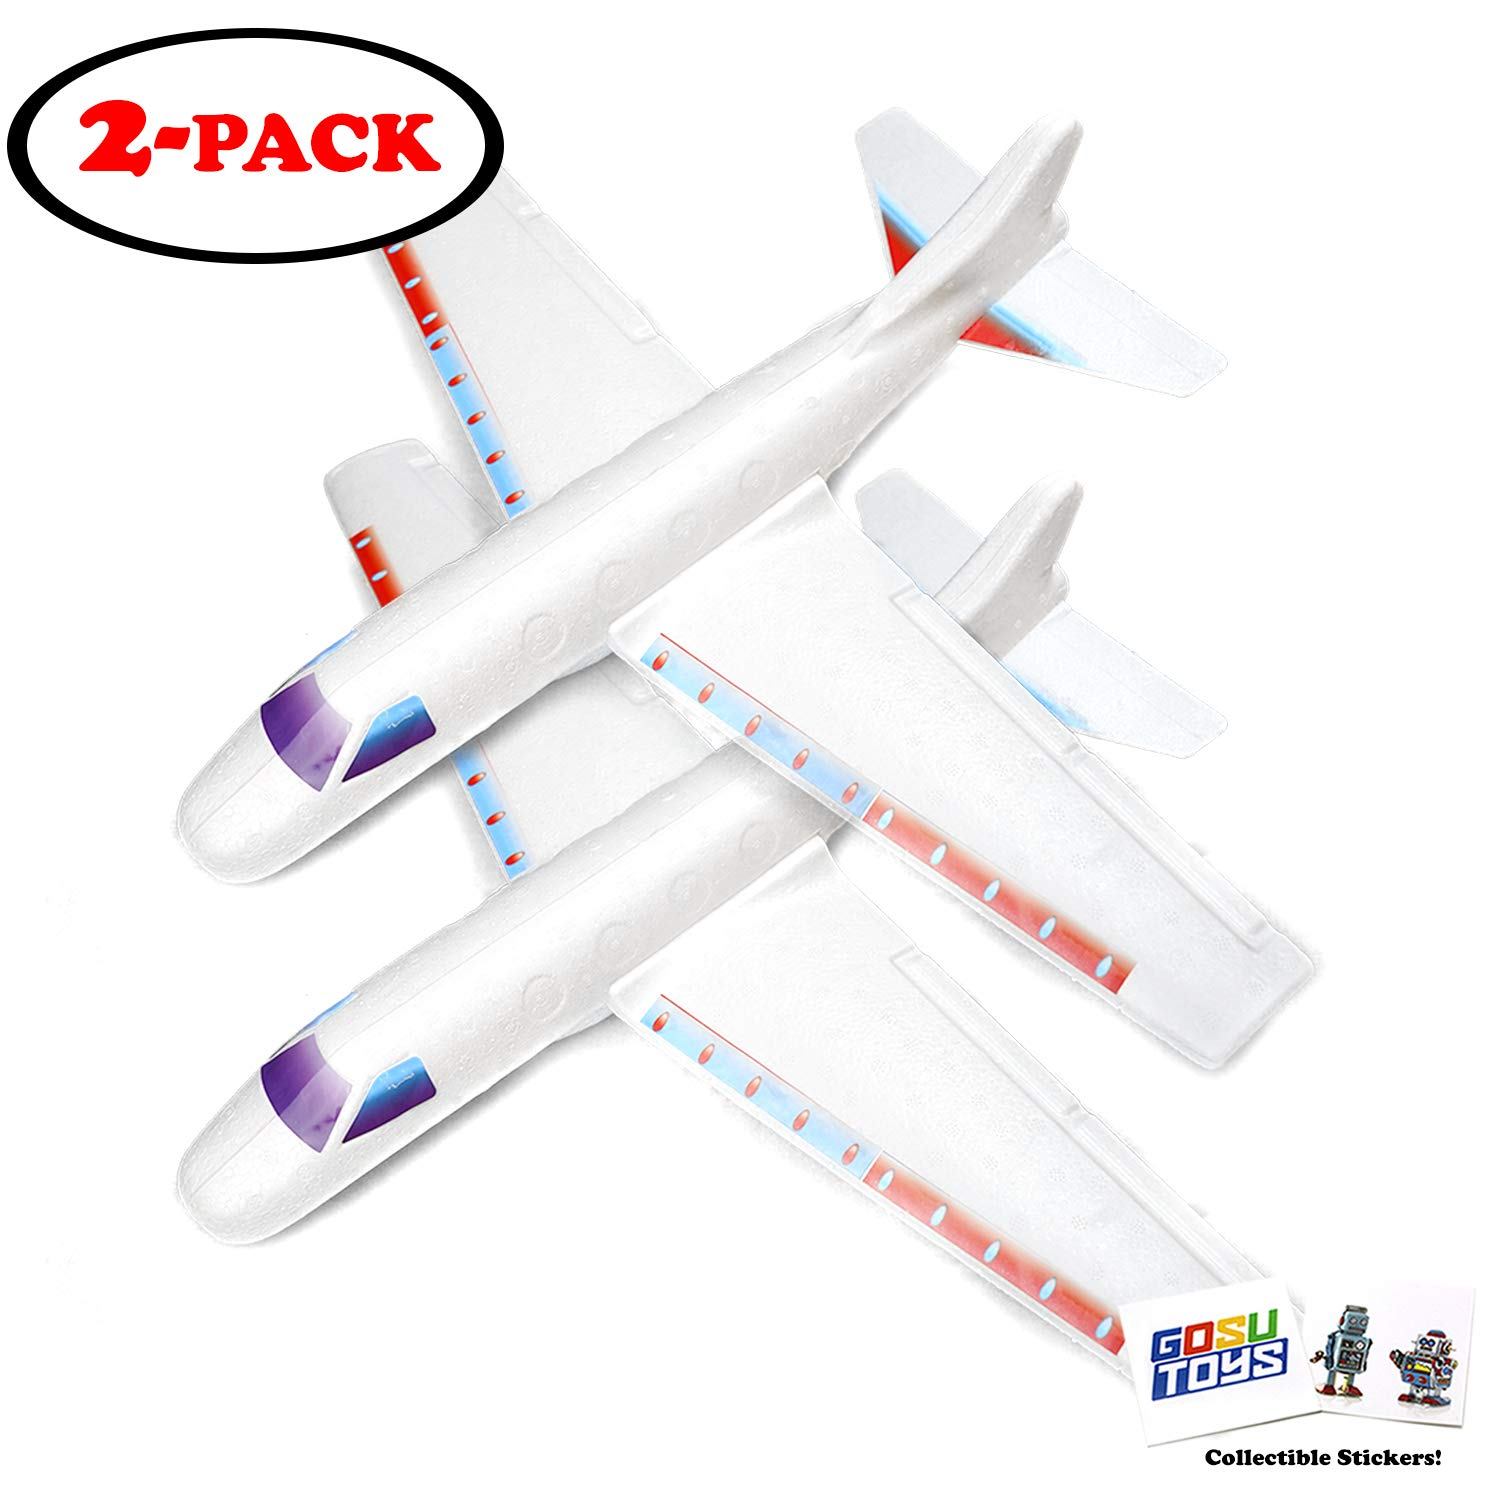 22 Giant Airplane Glider for Kids with 2 GosuToys Stickers - Flying Toy Build It, Throw It and Watch It Glide - Hours of Outdoor Fun